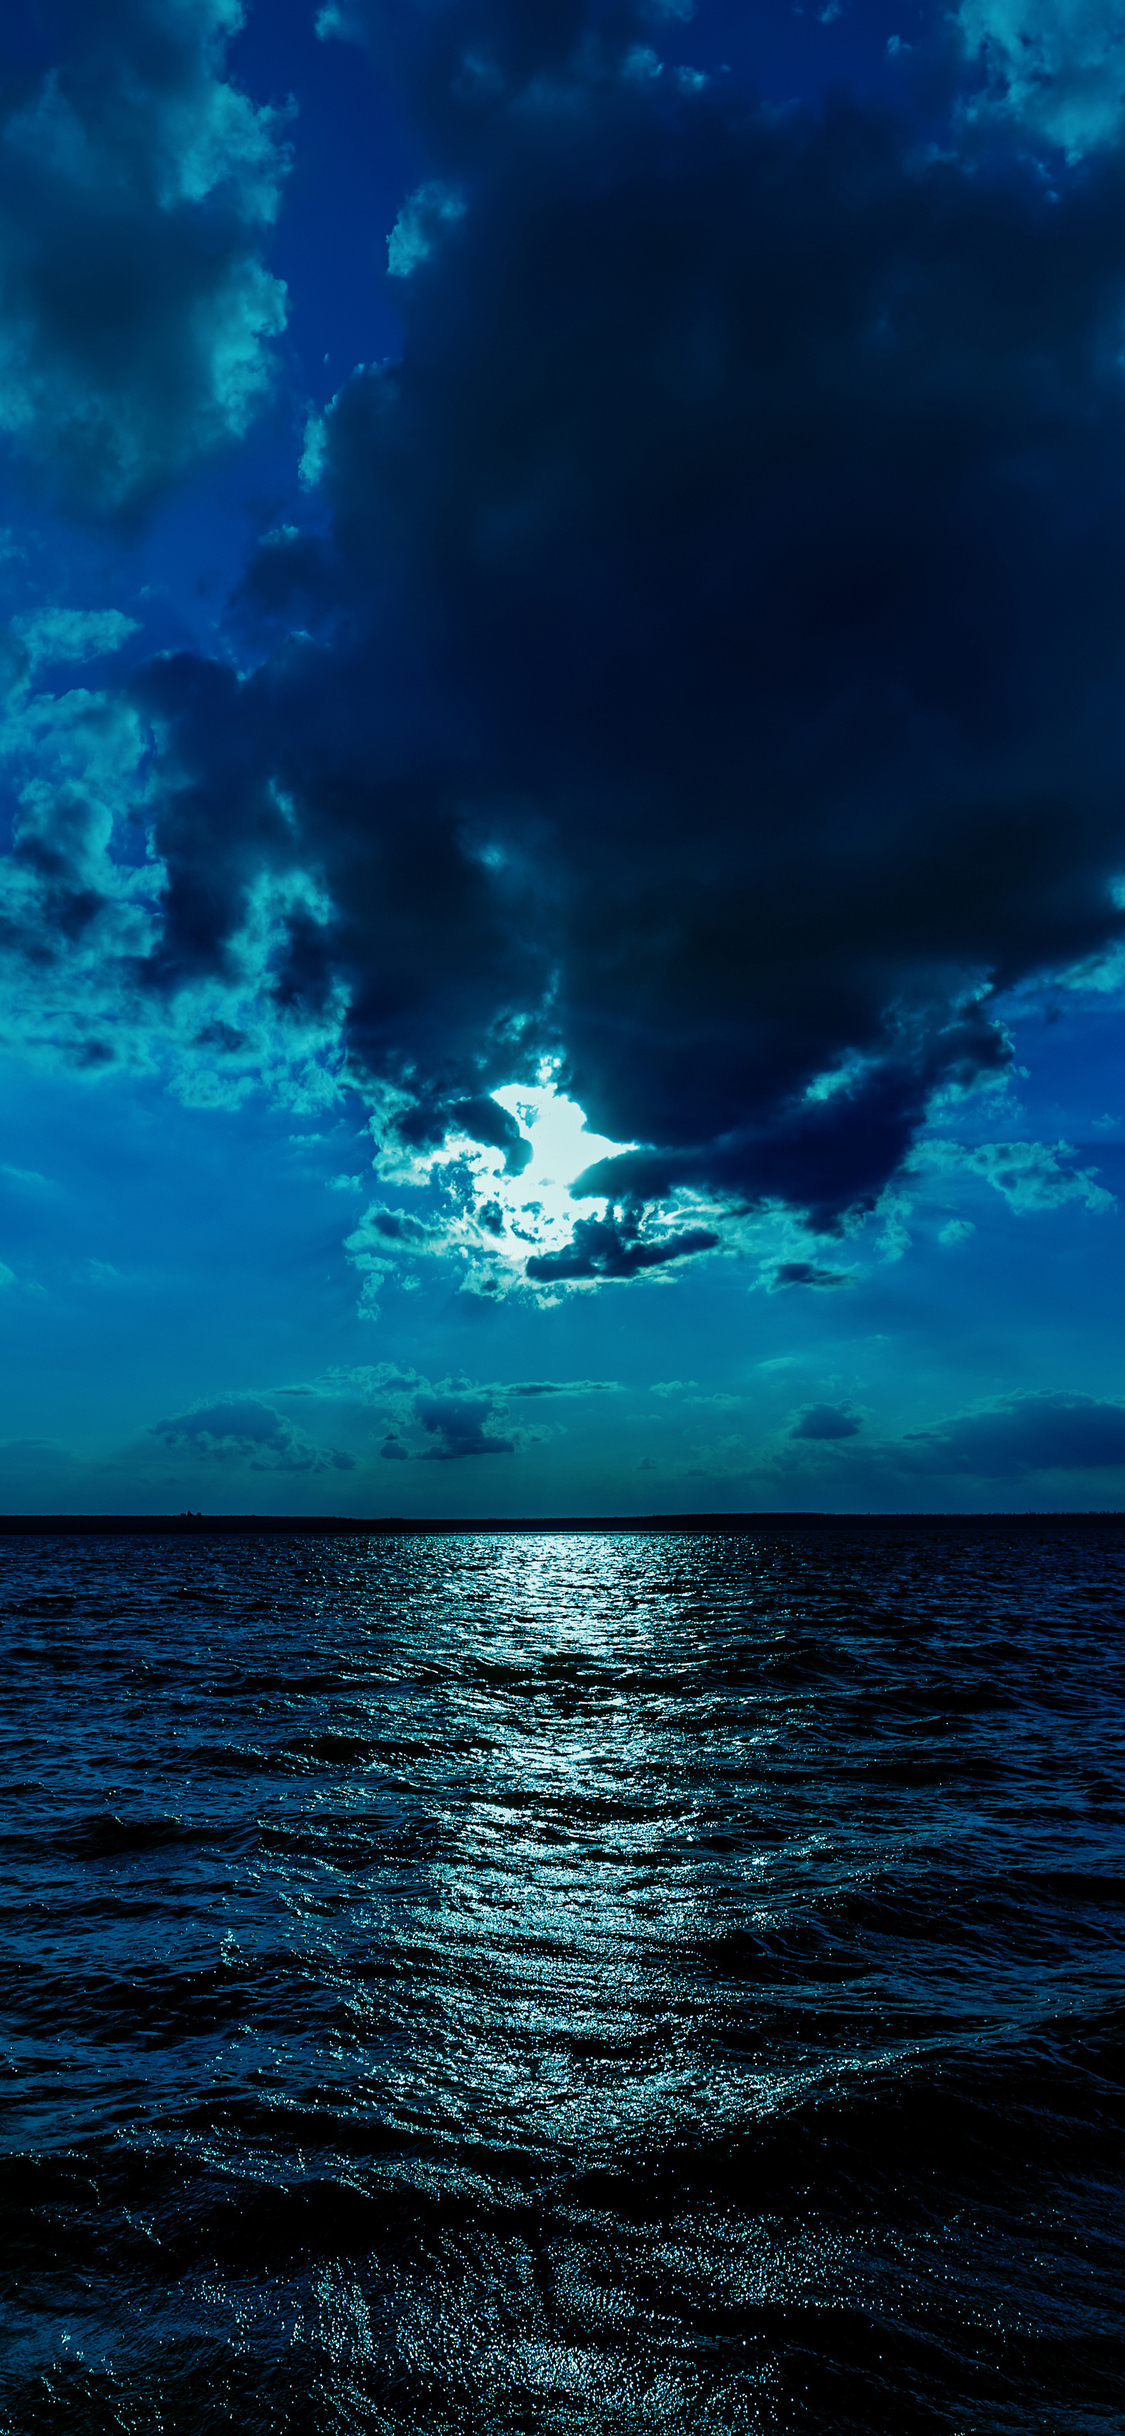 1125x2436 Night Moon Sea Sky Blue 4k Iphone Xs Iphone 10 Iphone X Hd 4k Wallpapers Images Backgrounds Photos And Pictures